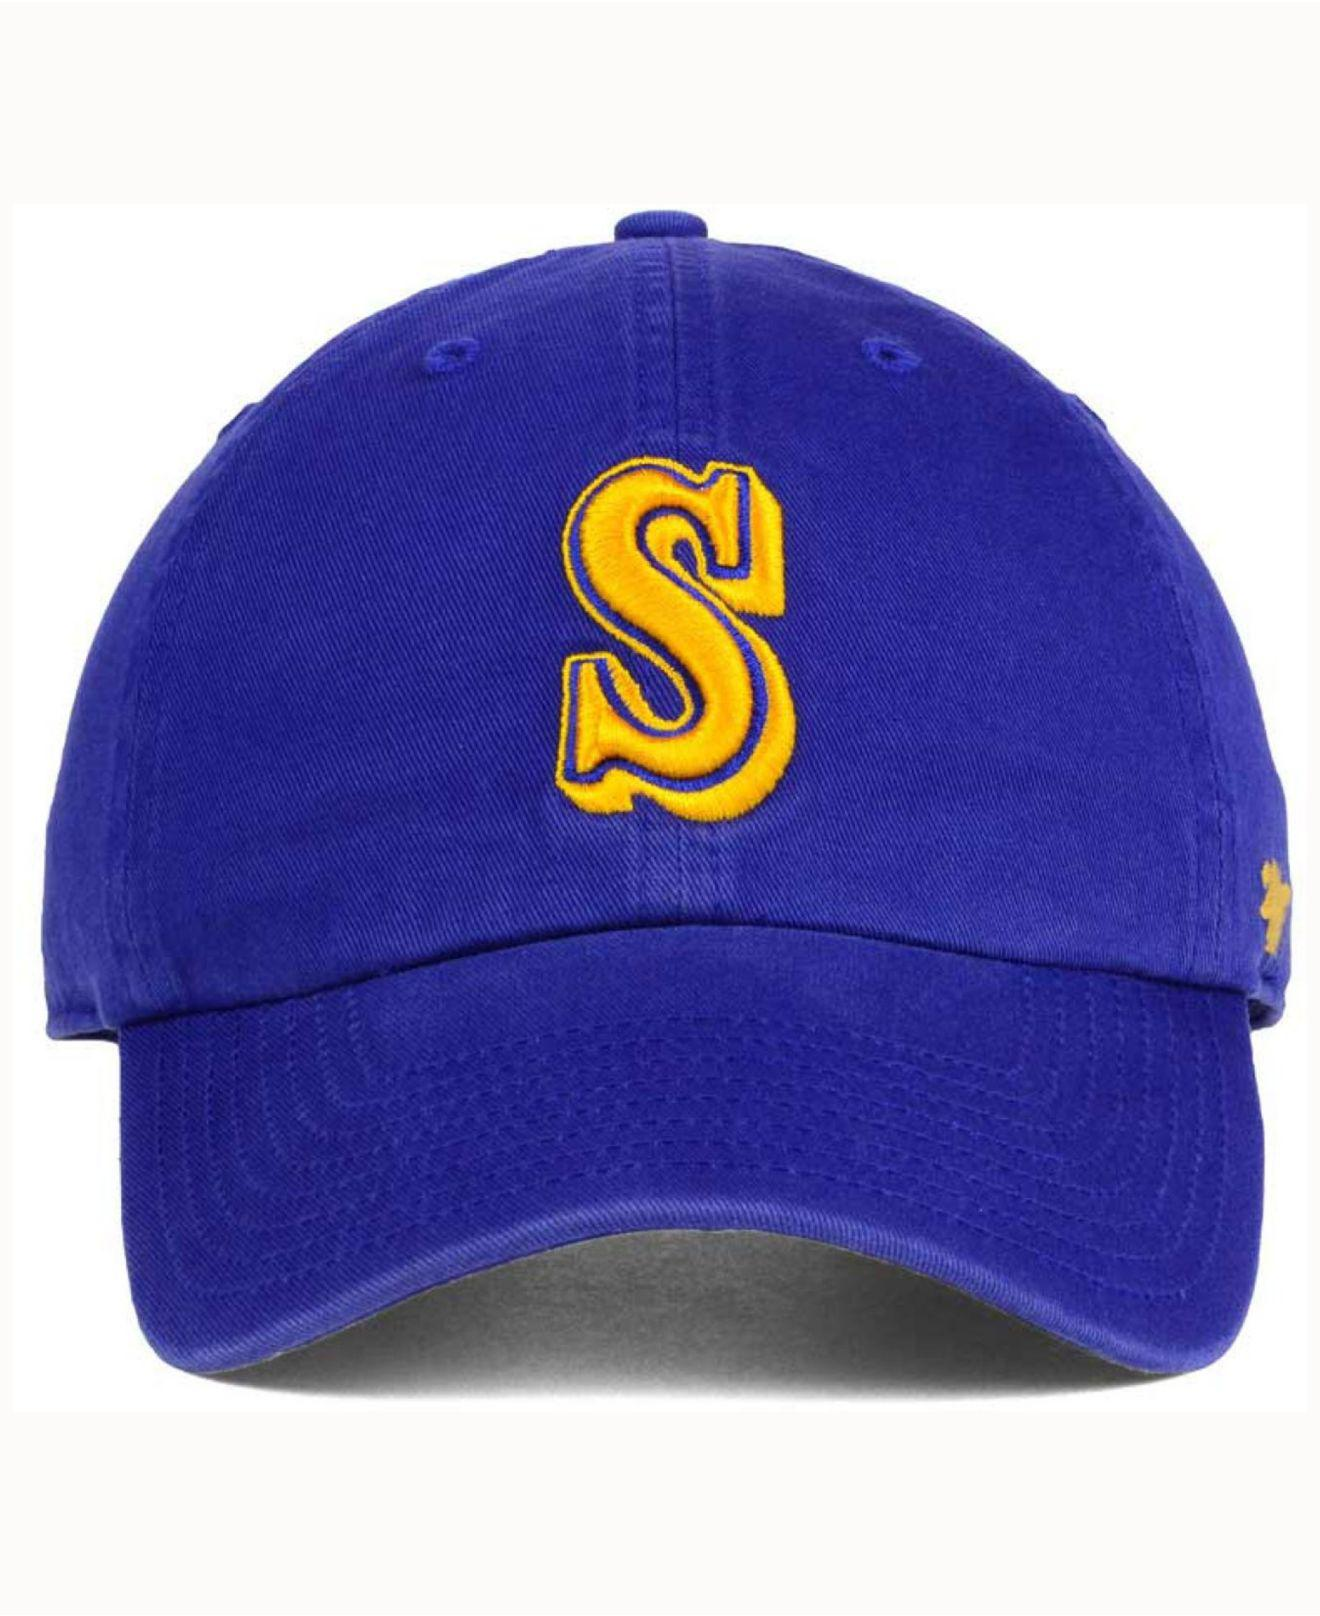 uk availability 54fc1 c1aa6 Lyst - 47 Brand Seattle Mariners Cooperstown Clean Up Cap in Blue for Men